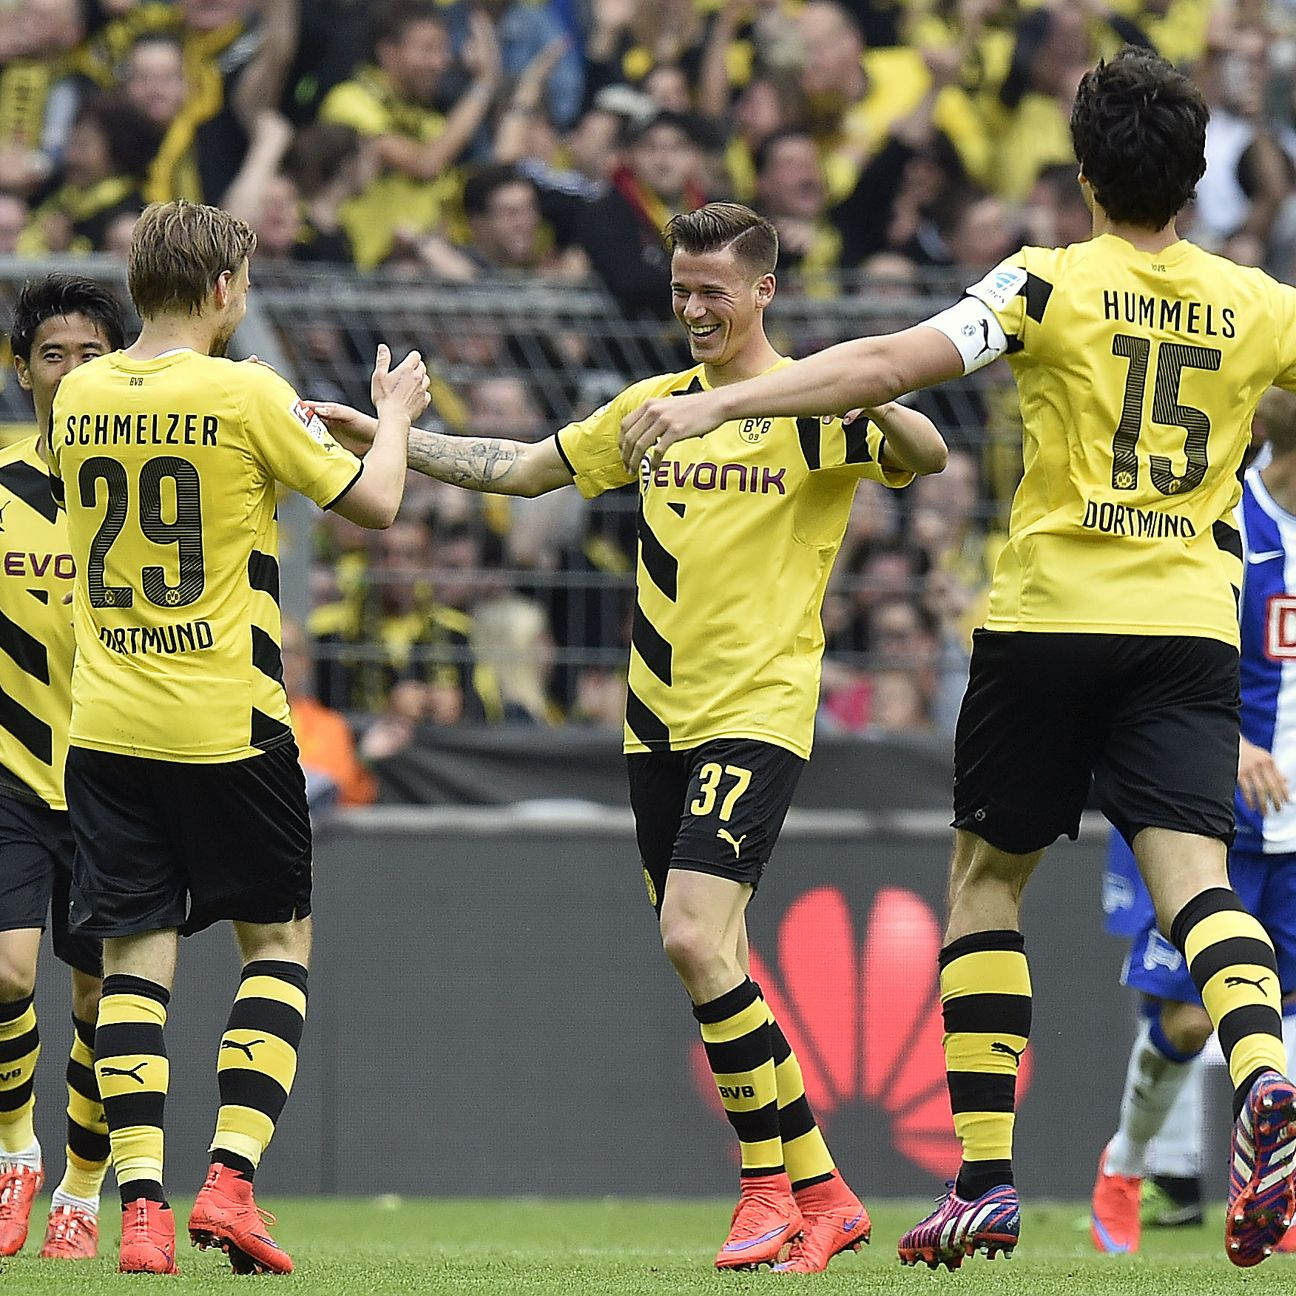 Borussia Dortmund are unbeaten in their last four Bundesliga matches after Saturday's 2-0 win over Hertha Berlin.